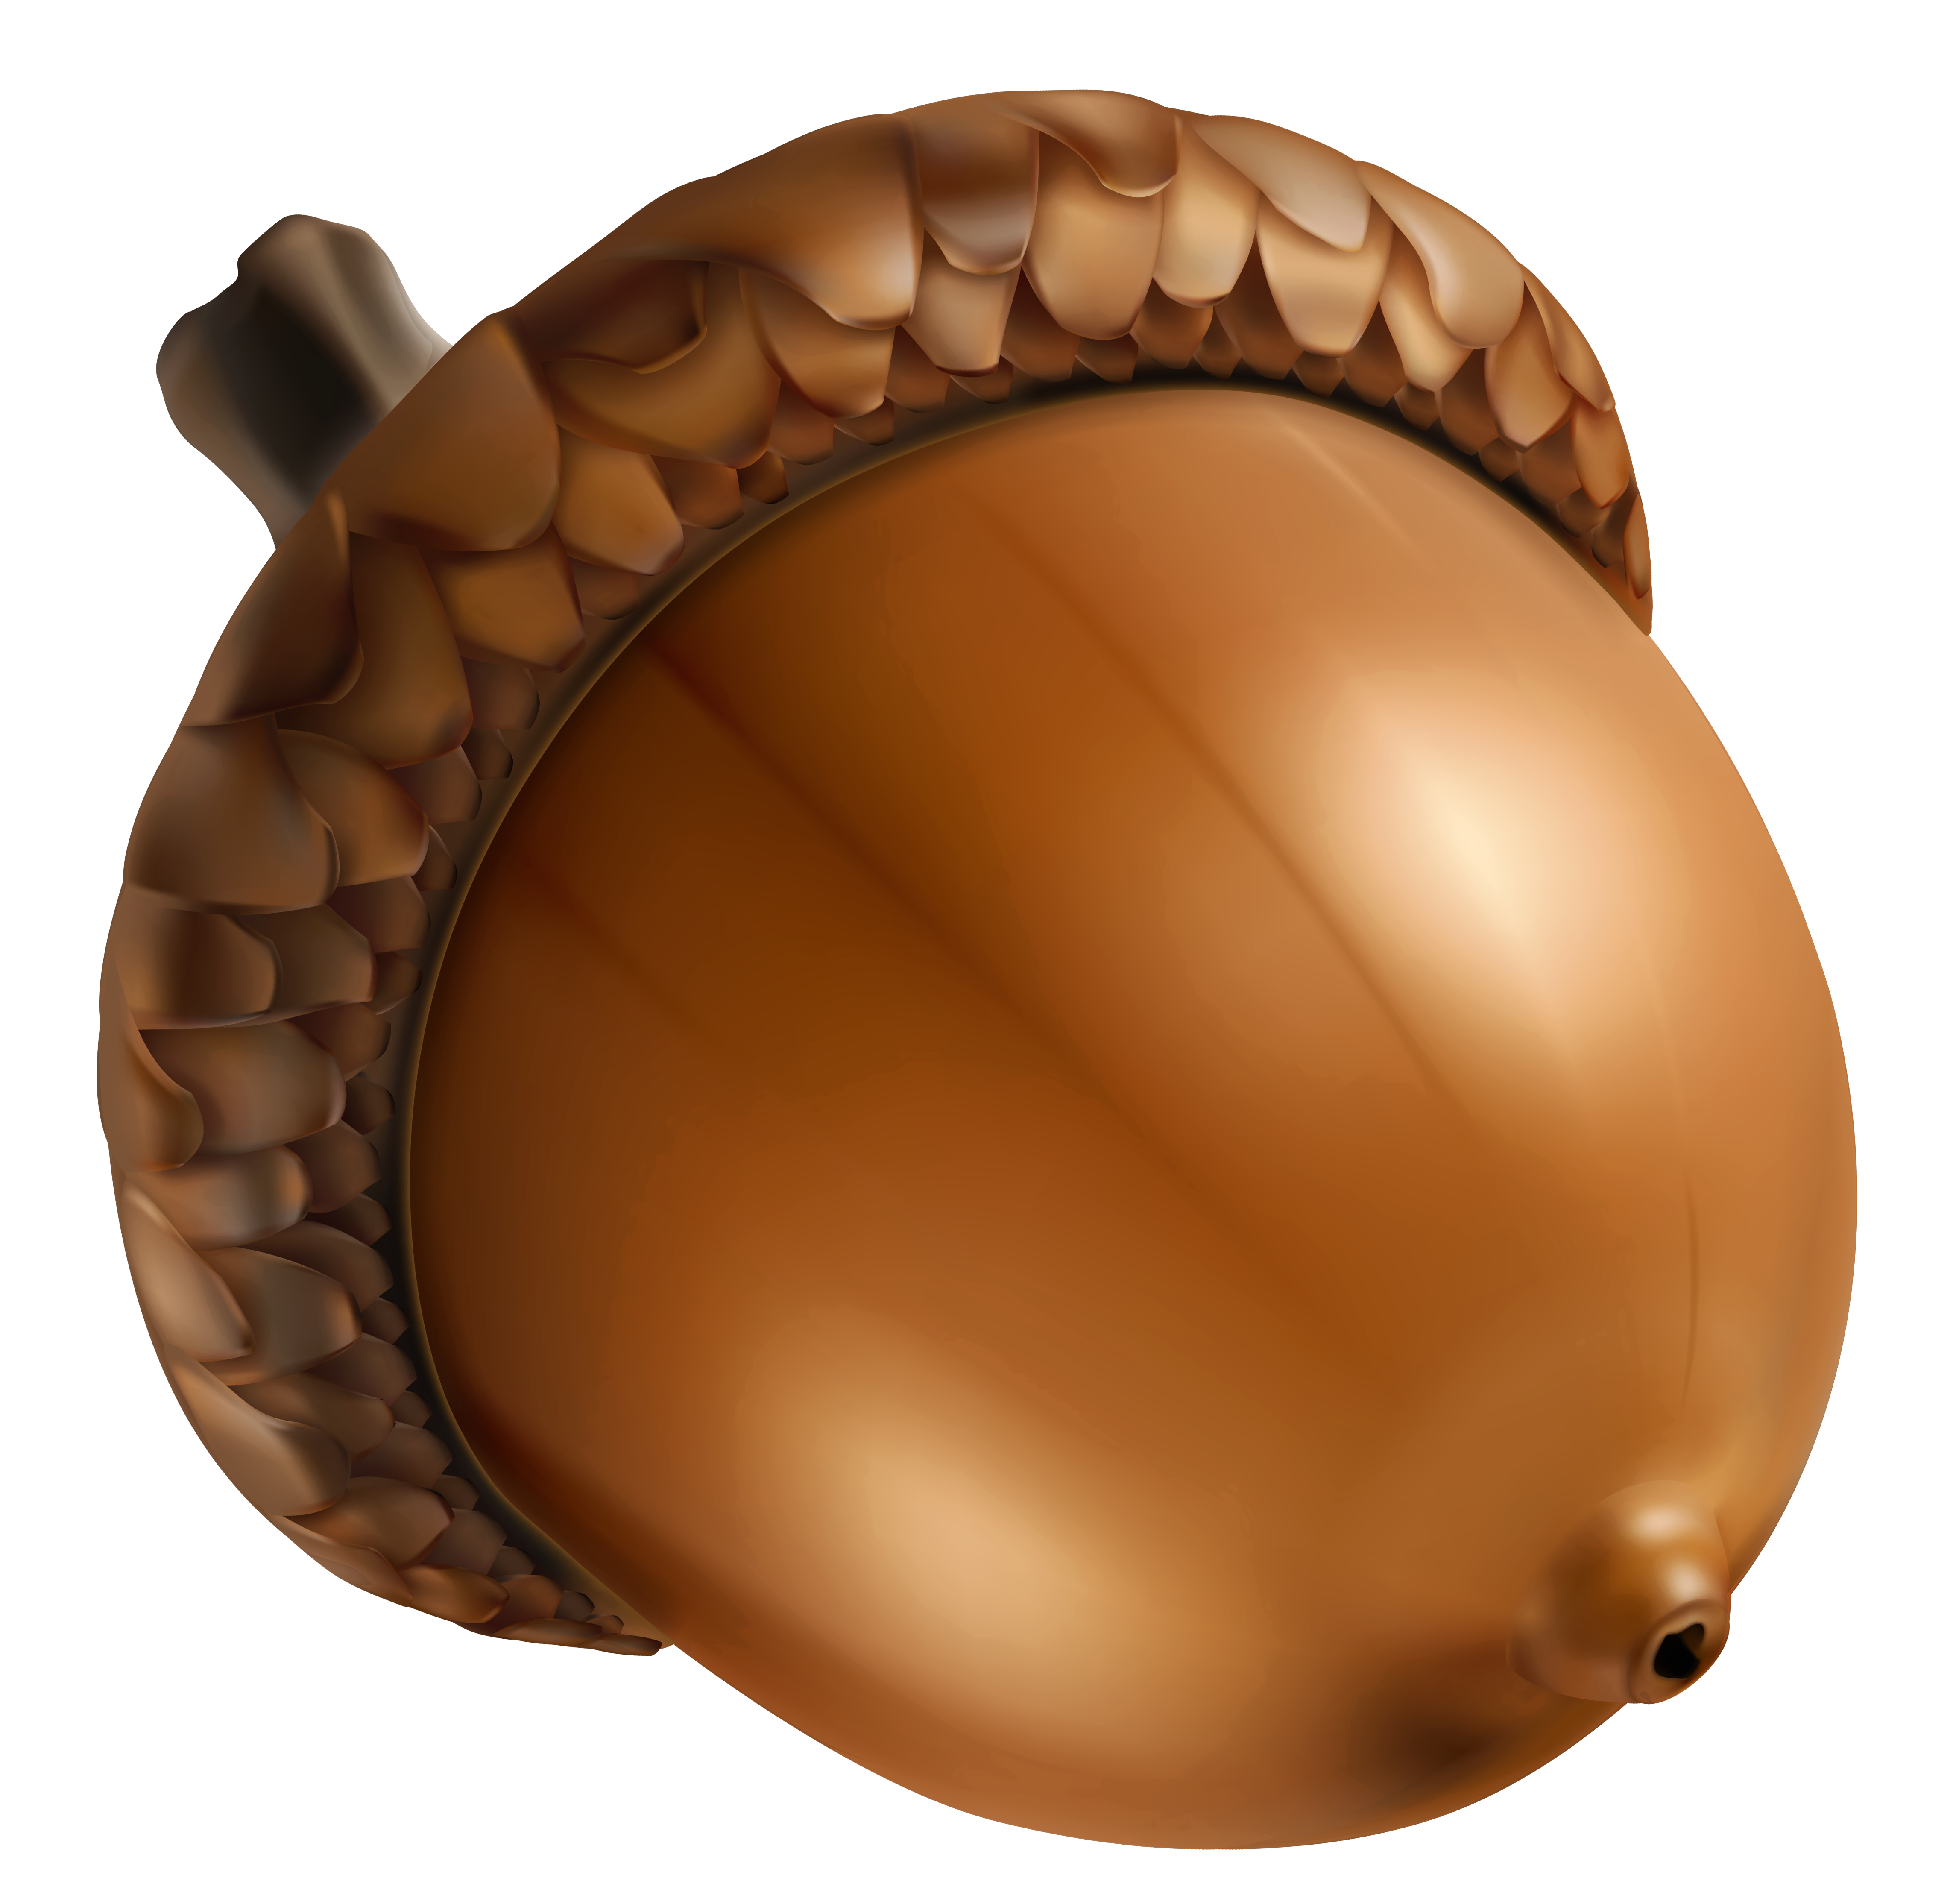 Acorn transparent thanksgiving. Png clipart image gallery